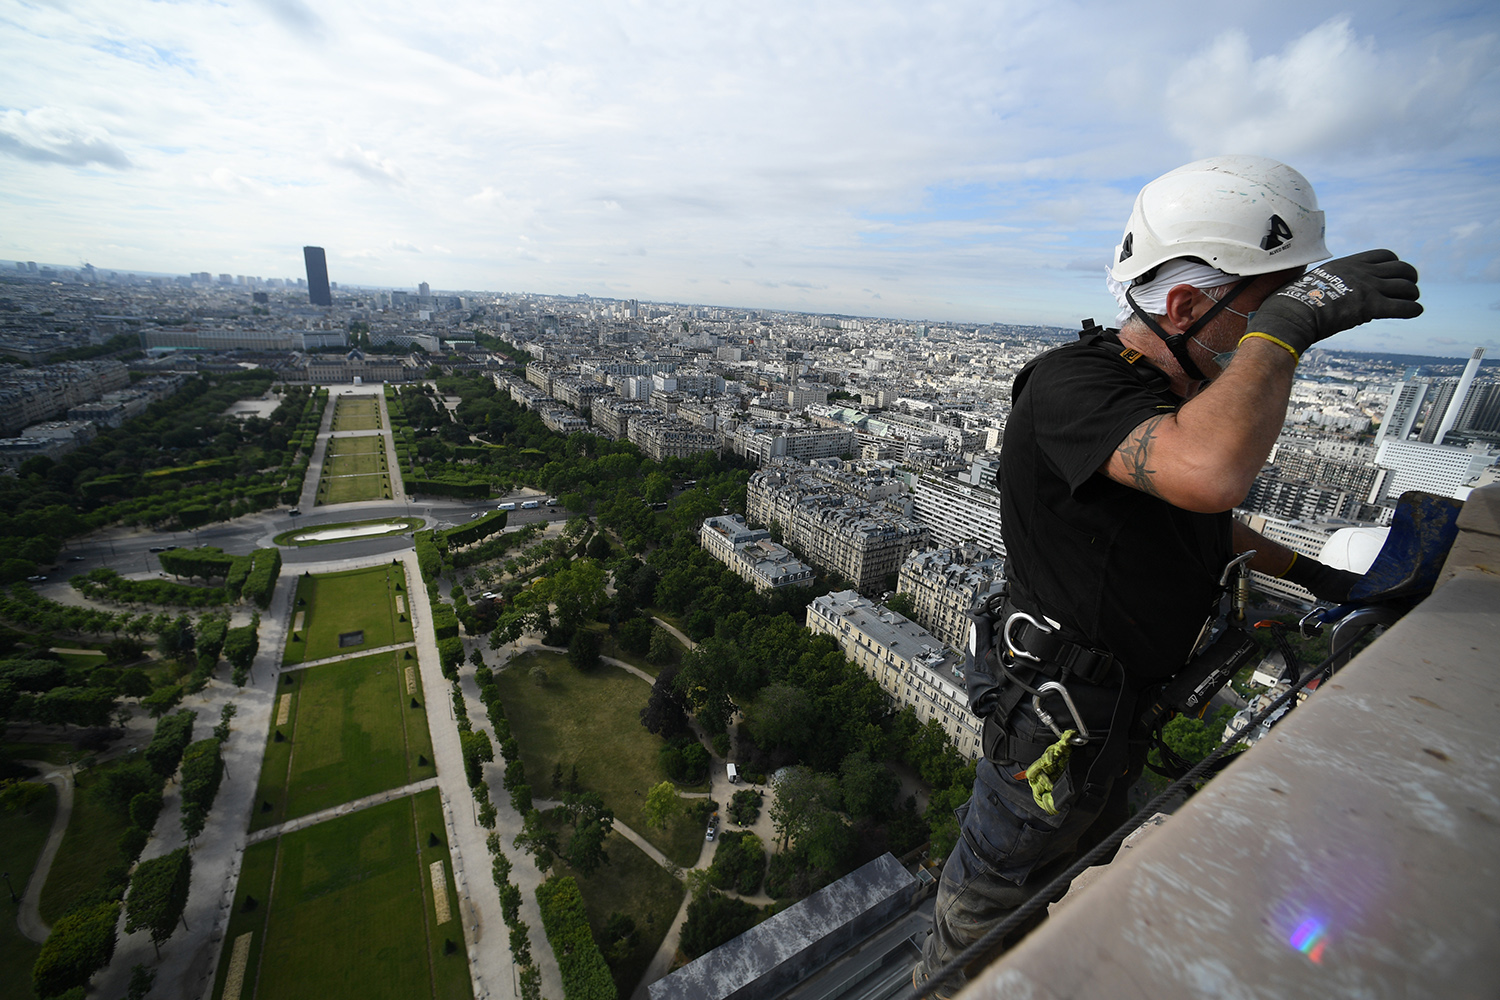 Workers prepare the Eiffel Tower for its reopening in Paris on June 18. Pascal Le Segretain/Getty Images